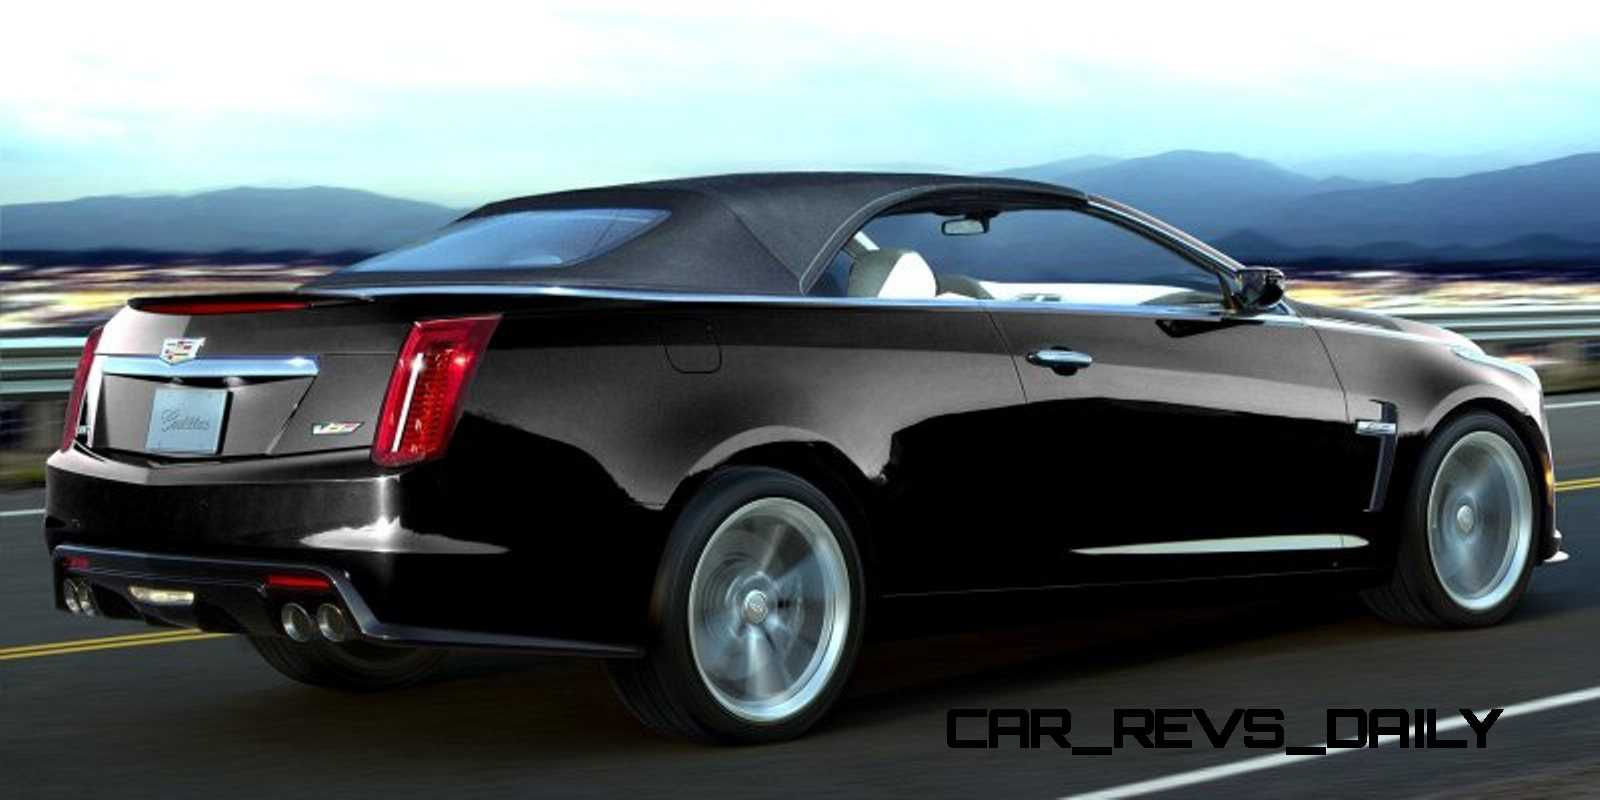 Cadillac Cts V Cabriolet Renderings | 2017 - 2018 Best Car Reviews